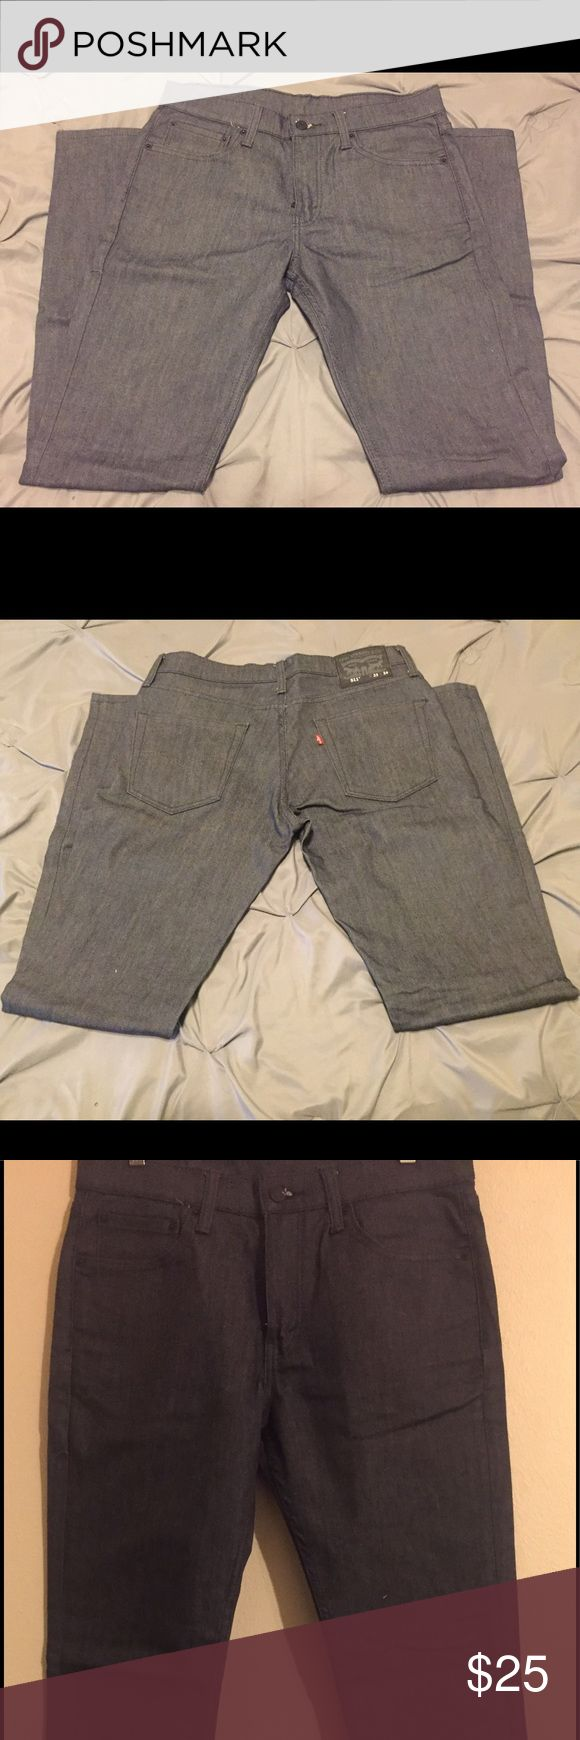 Men's 511 Levi's Jeans Basically NWOT only tried on never really worn... Levi's Jeans Slim Straight